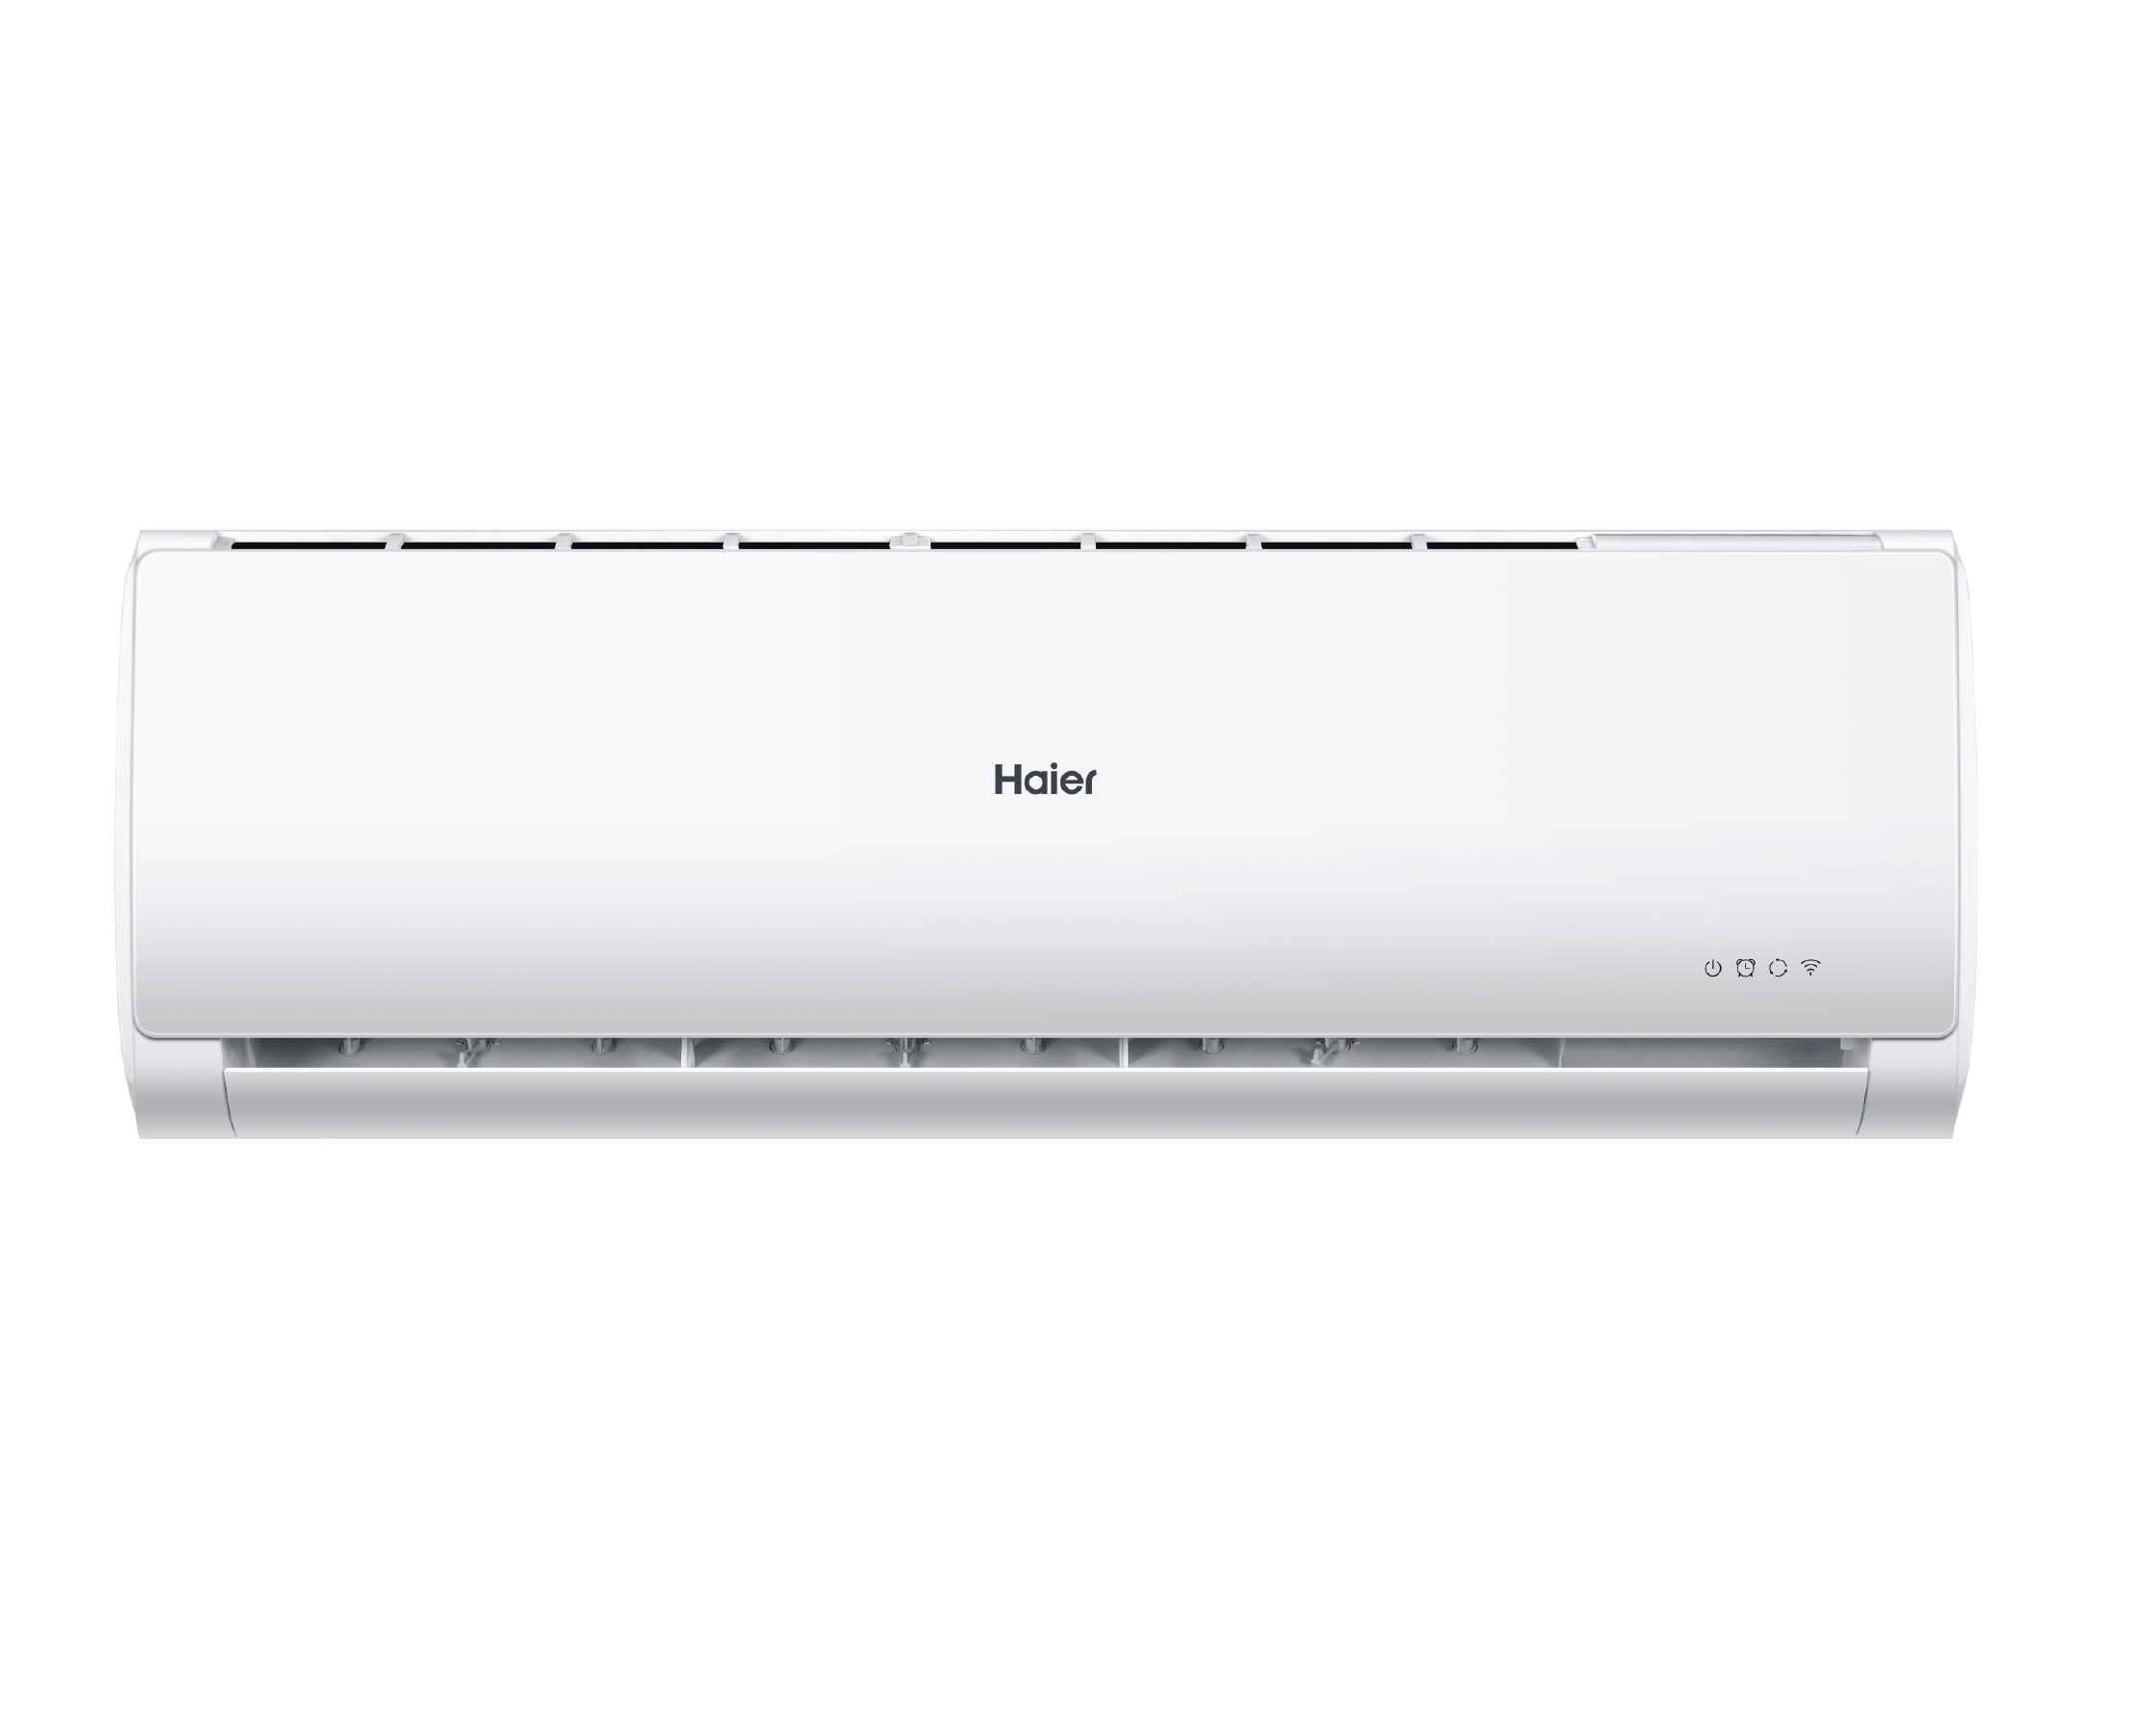 Haier 2.0 Ton Tundra Air Conditioner best price in bd